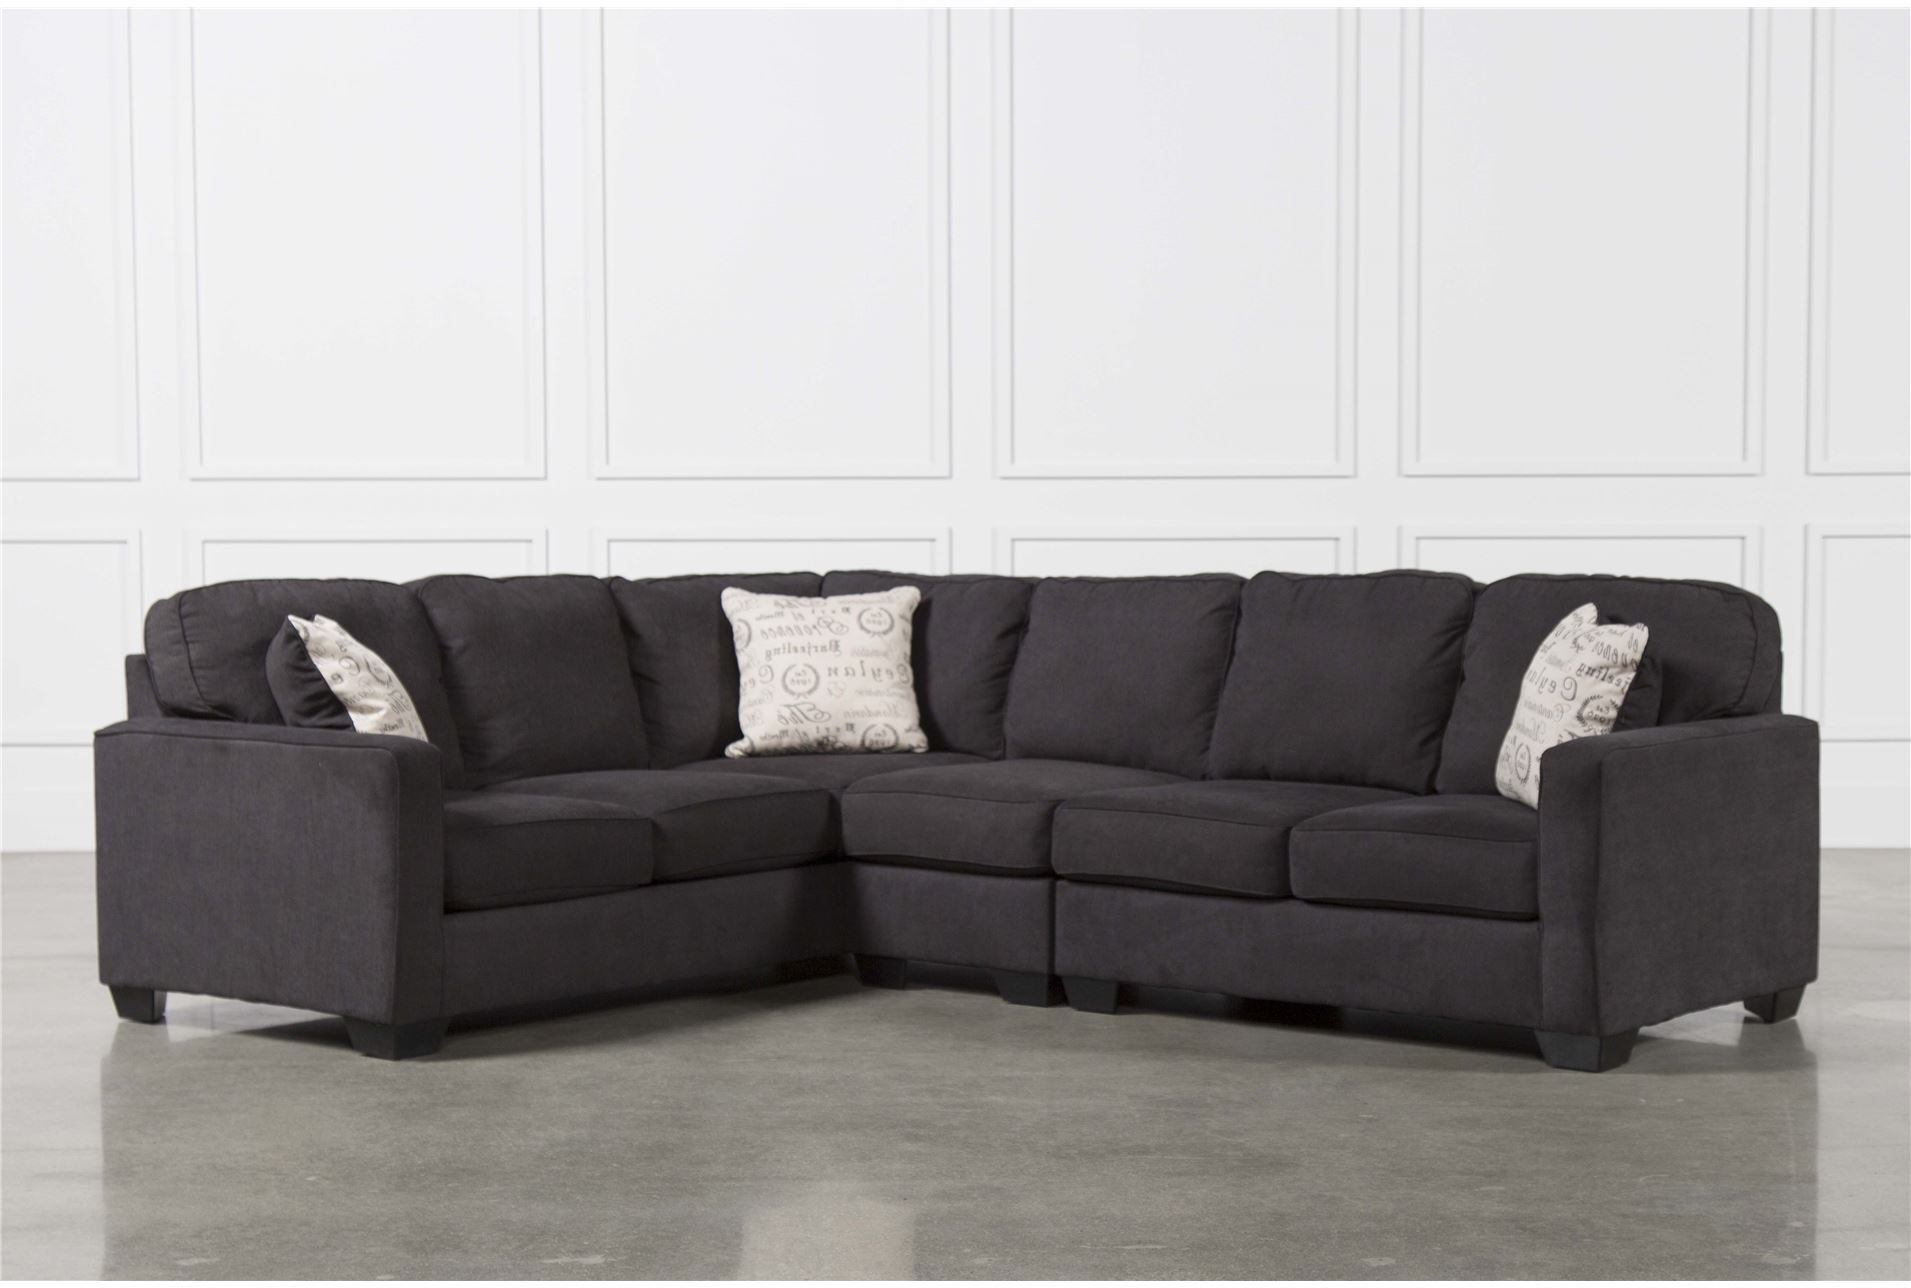 Alenya Charcoal 3 Piece Sectional W/raf Loveseat - Signature | New within Glamour Ii 3 Piece Sectionals (Image 2 of 30)